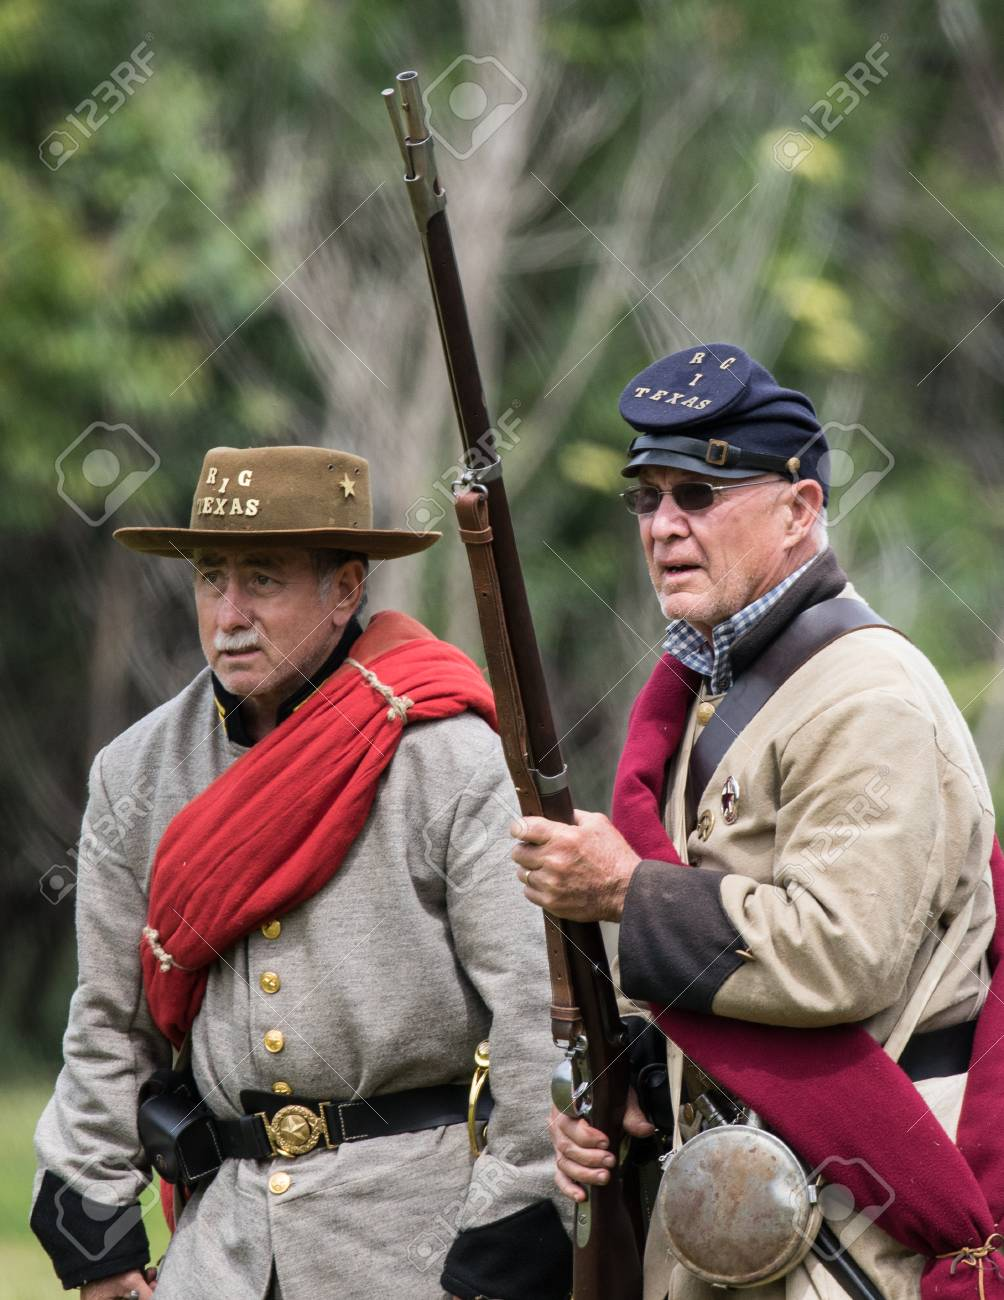 Civil War Union scout at the Dog Island reenactment in Red Bluff,